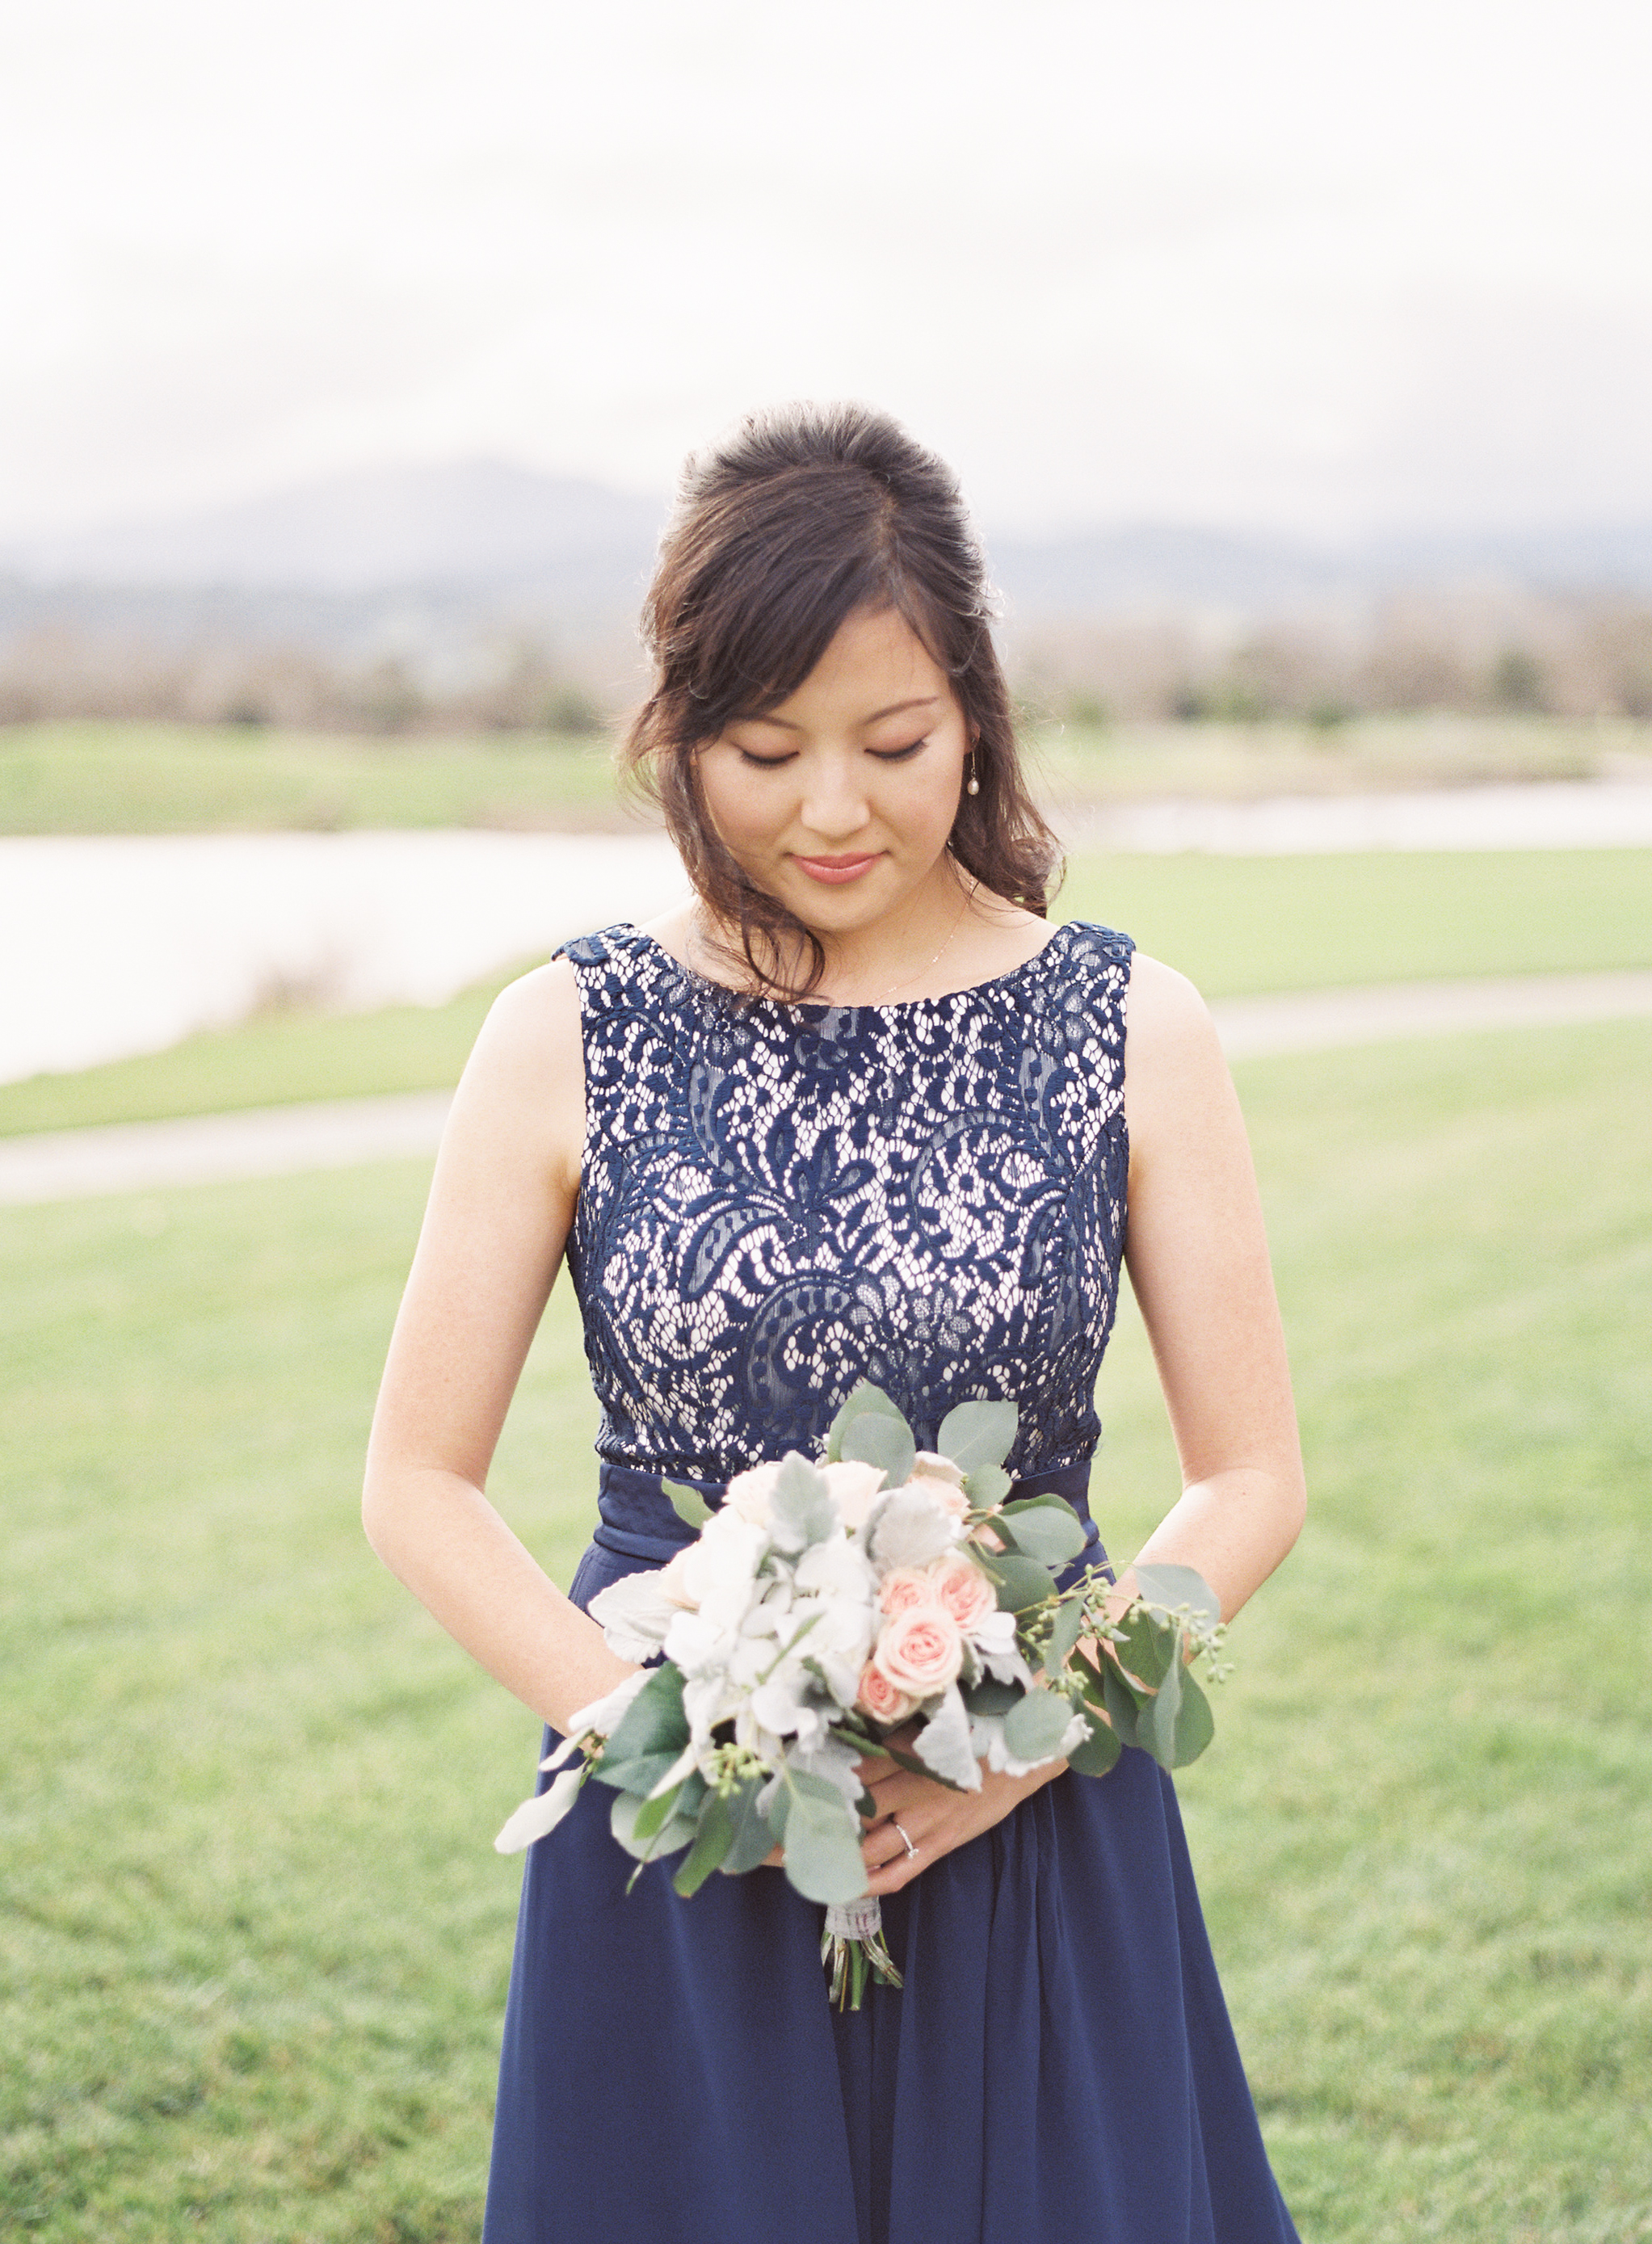 StephanieGanPhotoJNWed-07.jpg